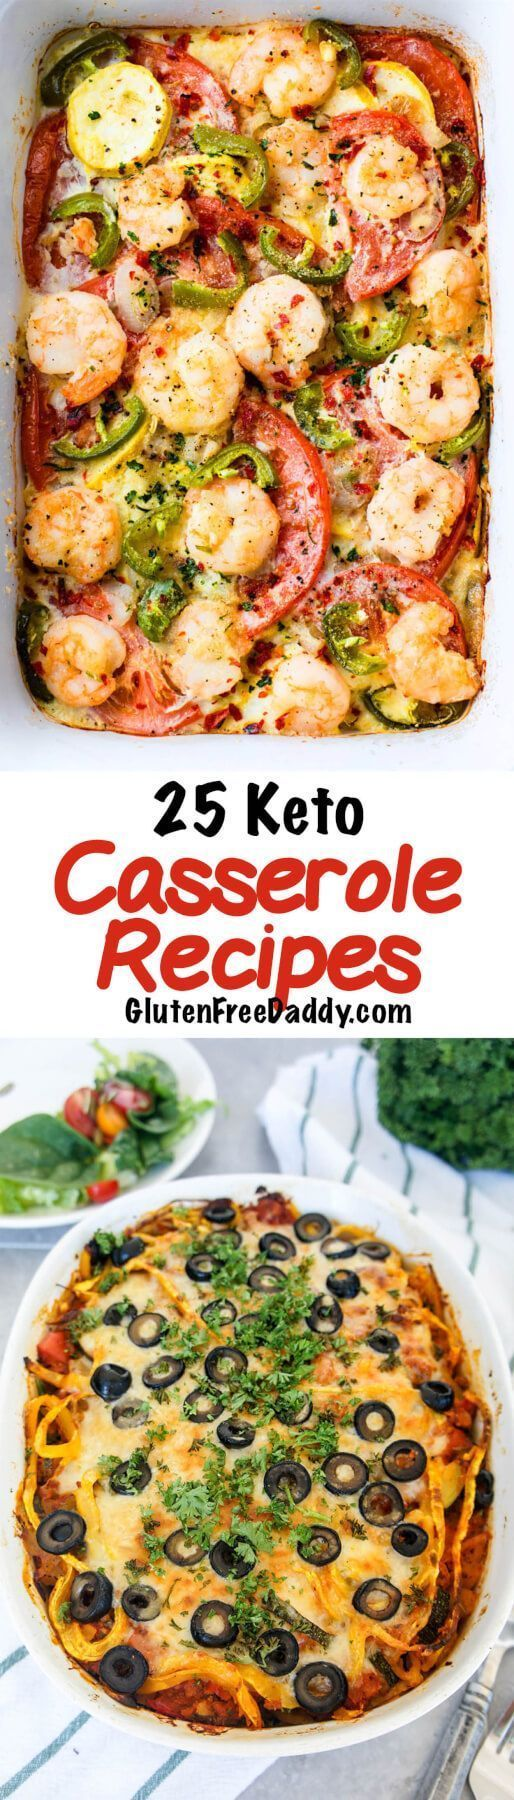 9 of the Best Ever Keto Casserole Recipes – Cooking is Easy Now!